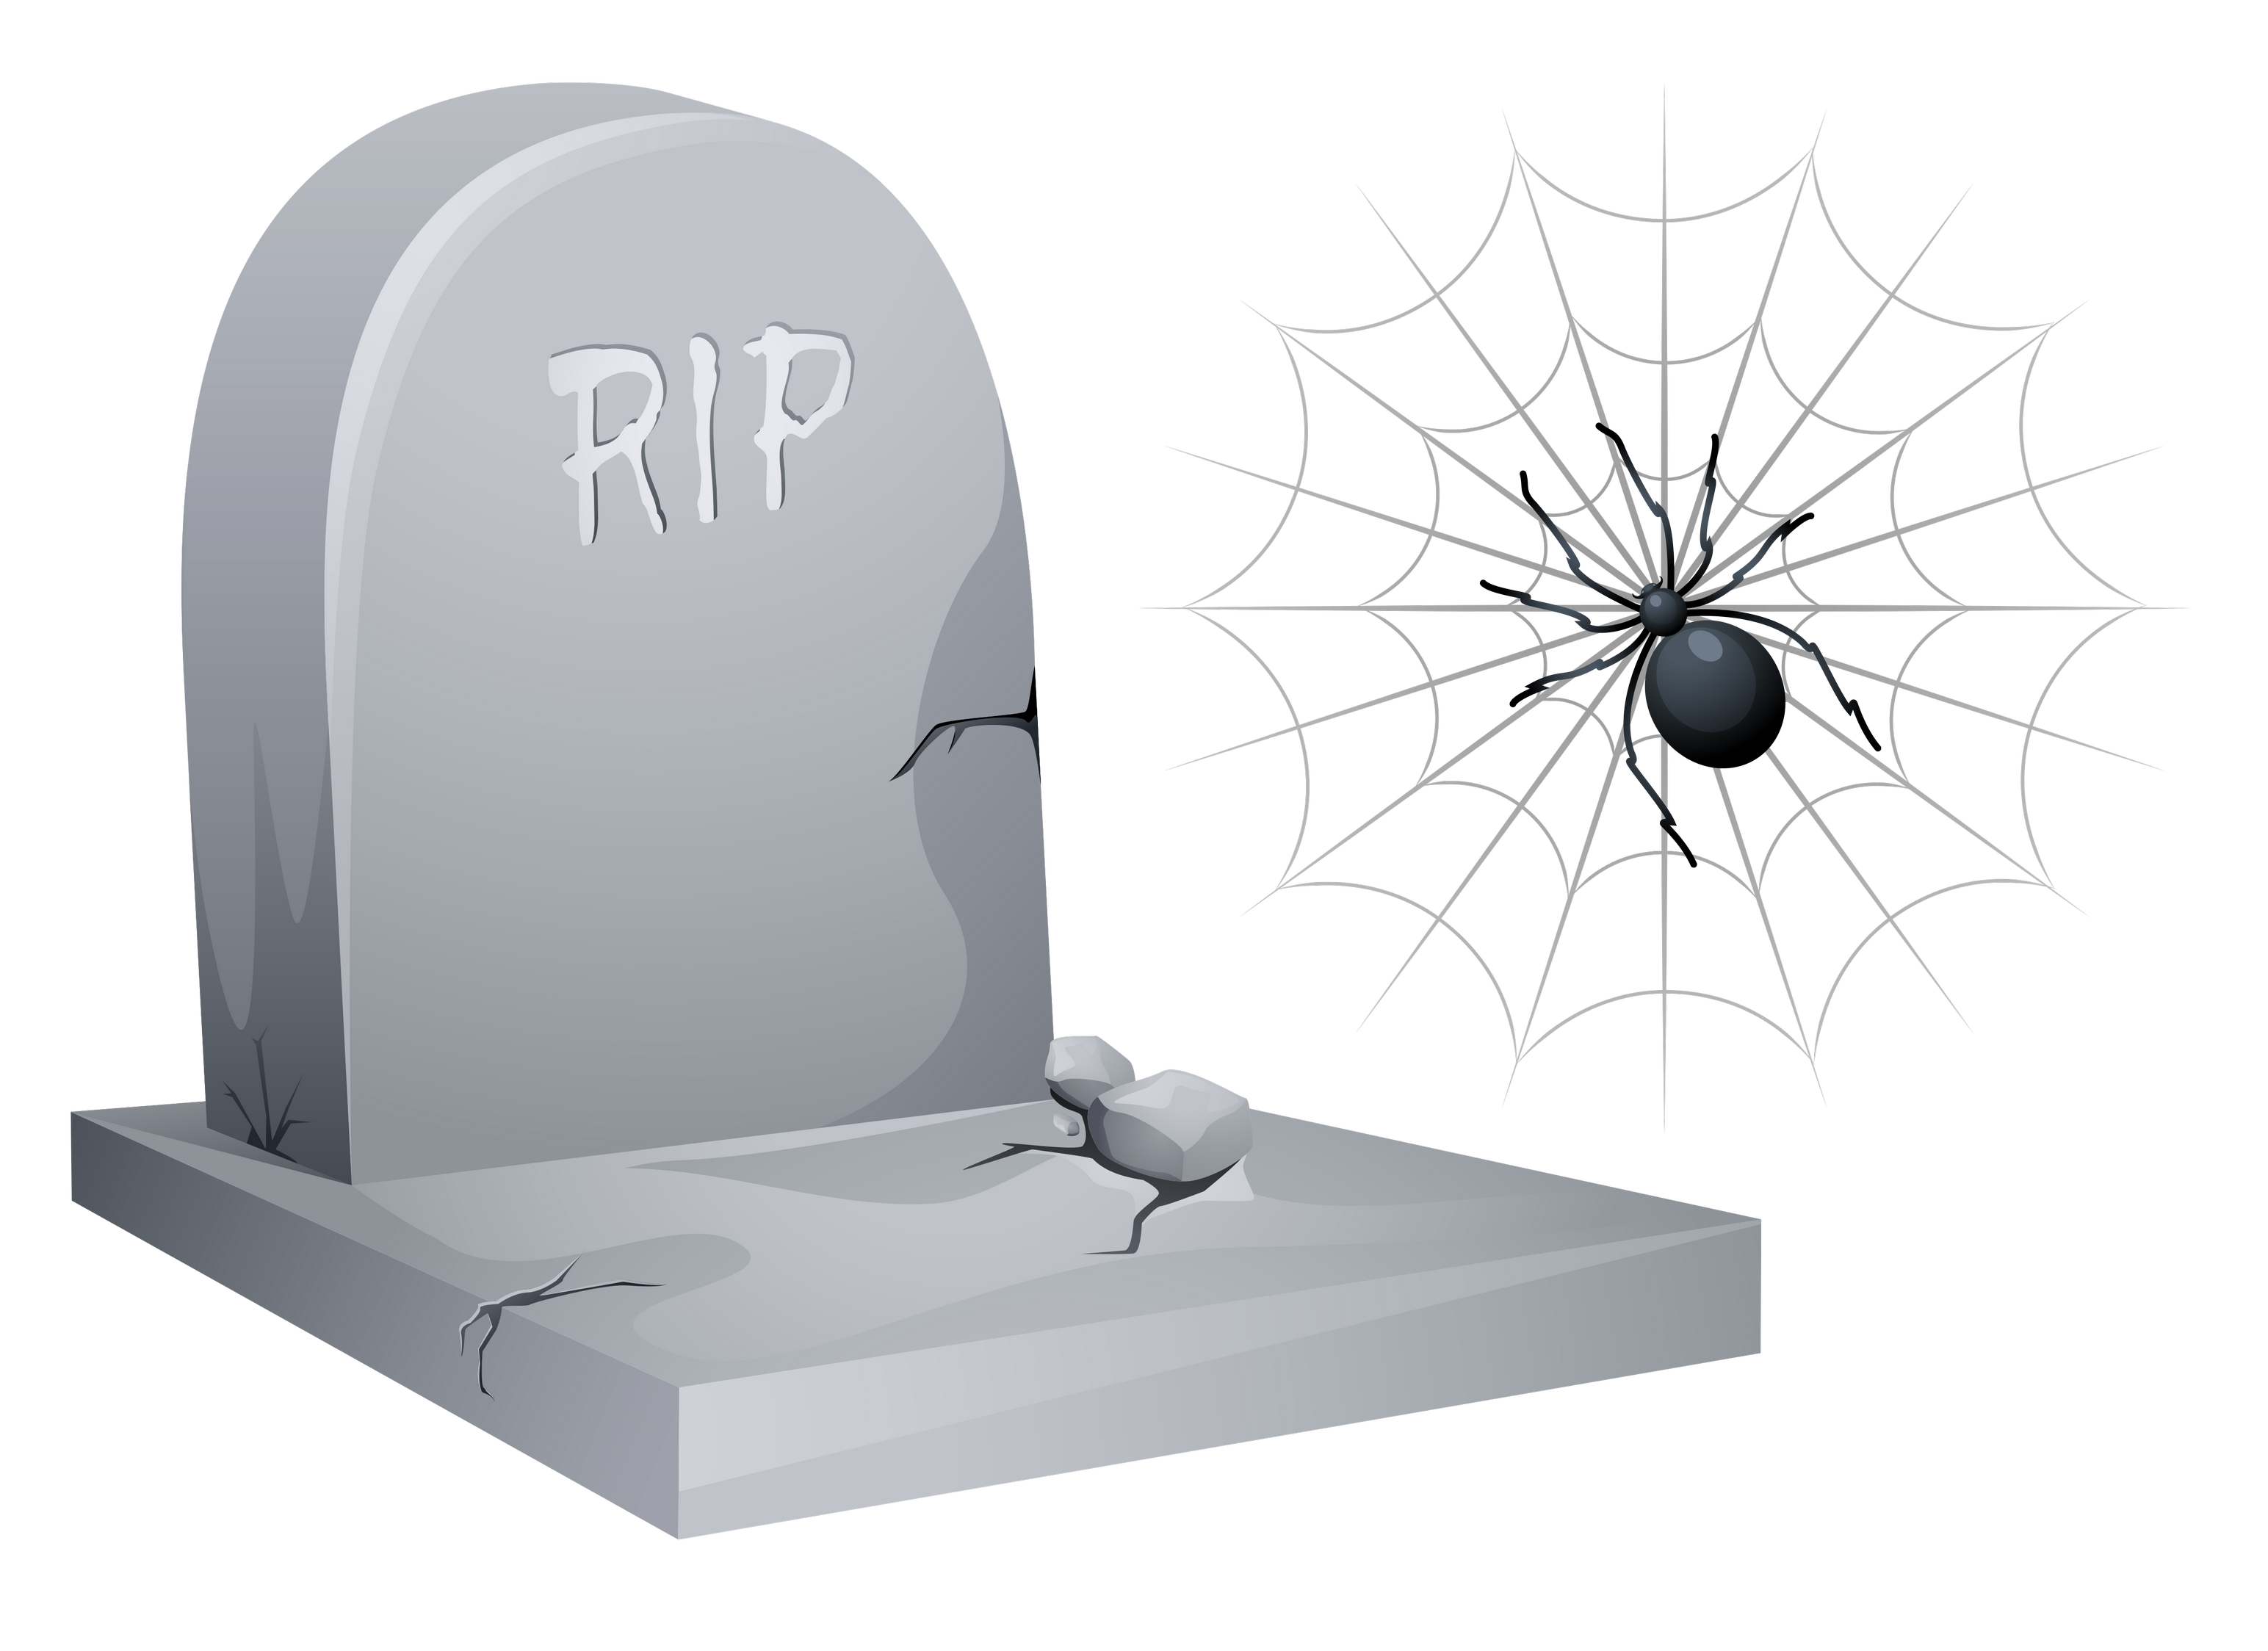 Tombstone clipart halloween tombstone Spider Clipart RIP Tombstone Gallery